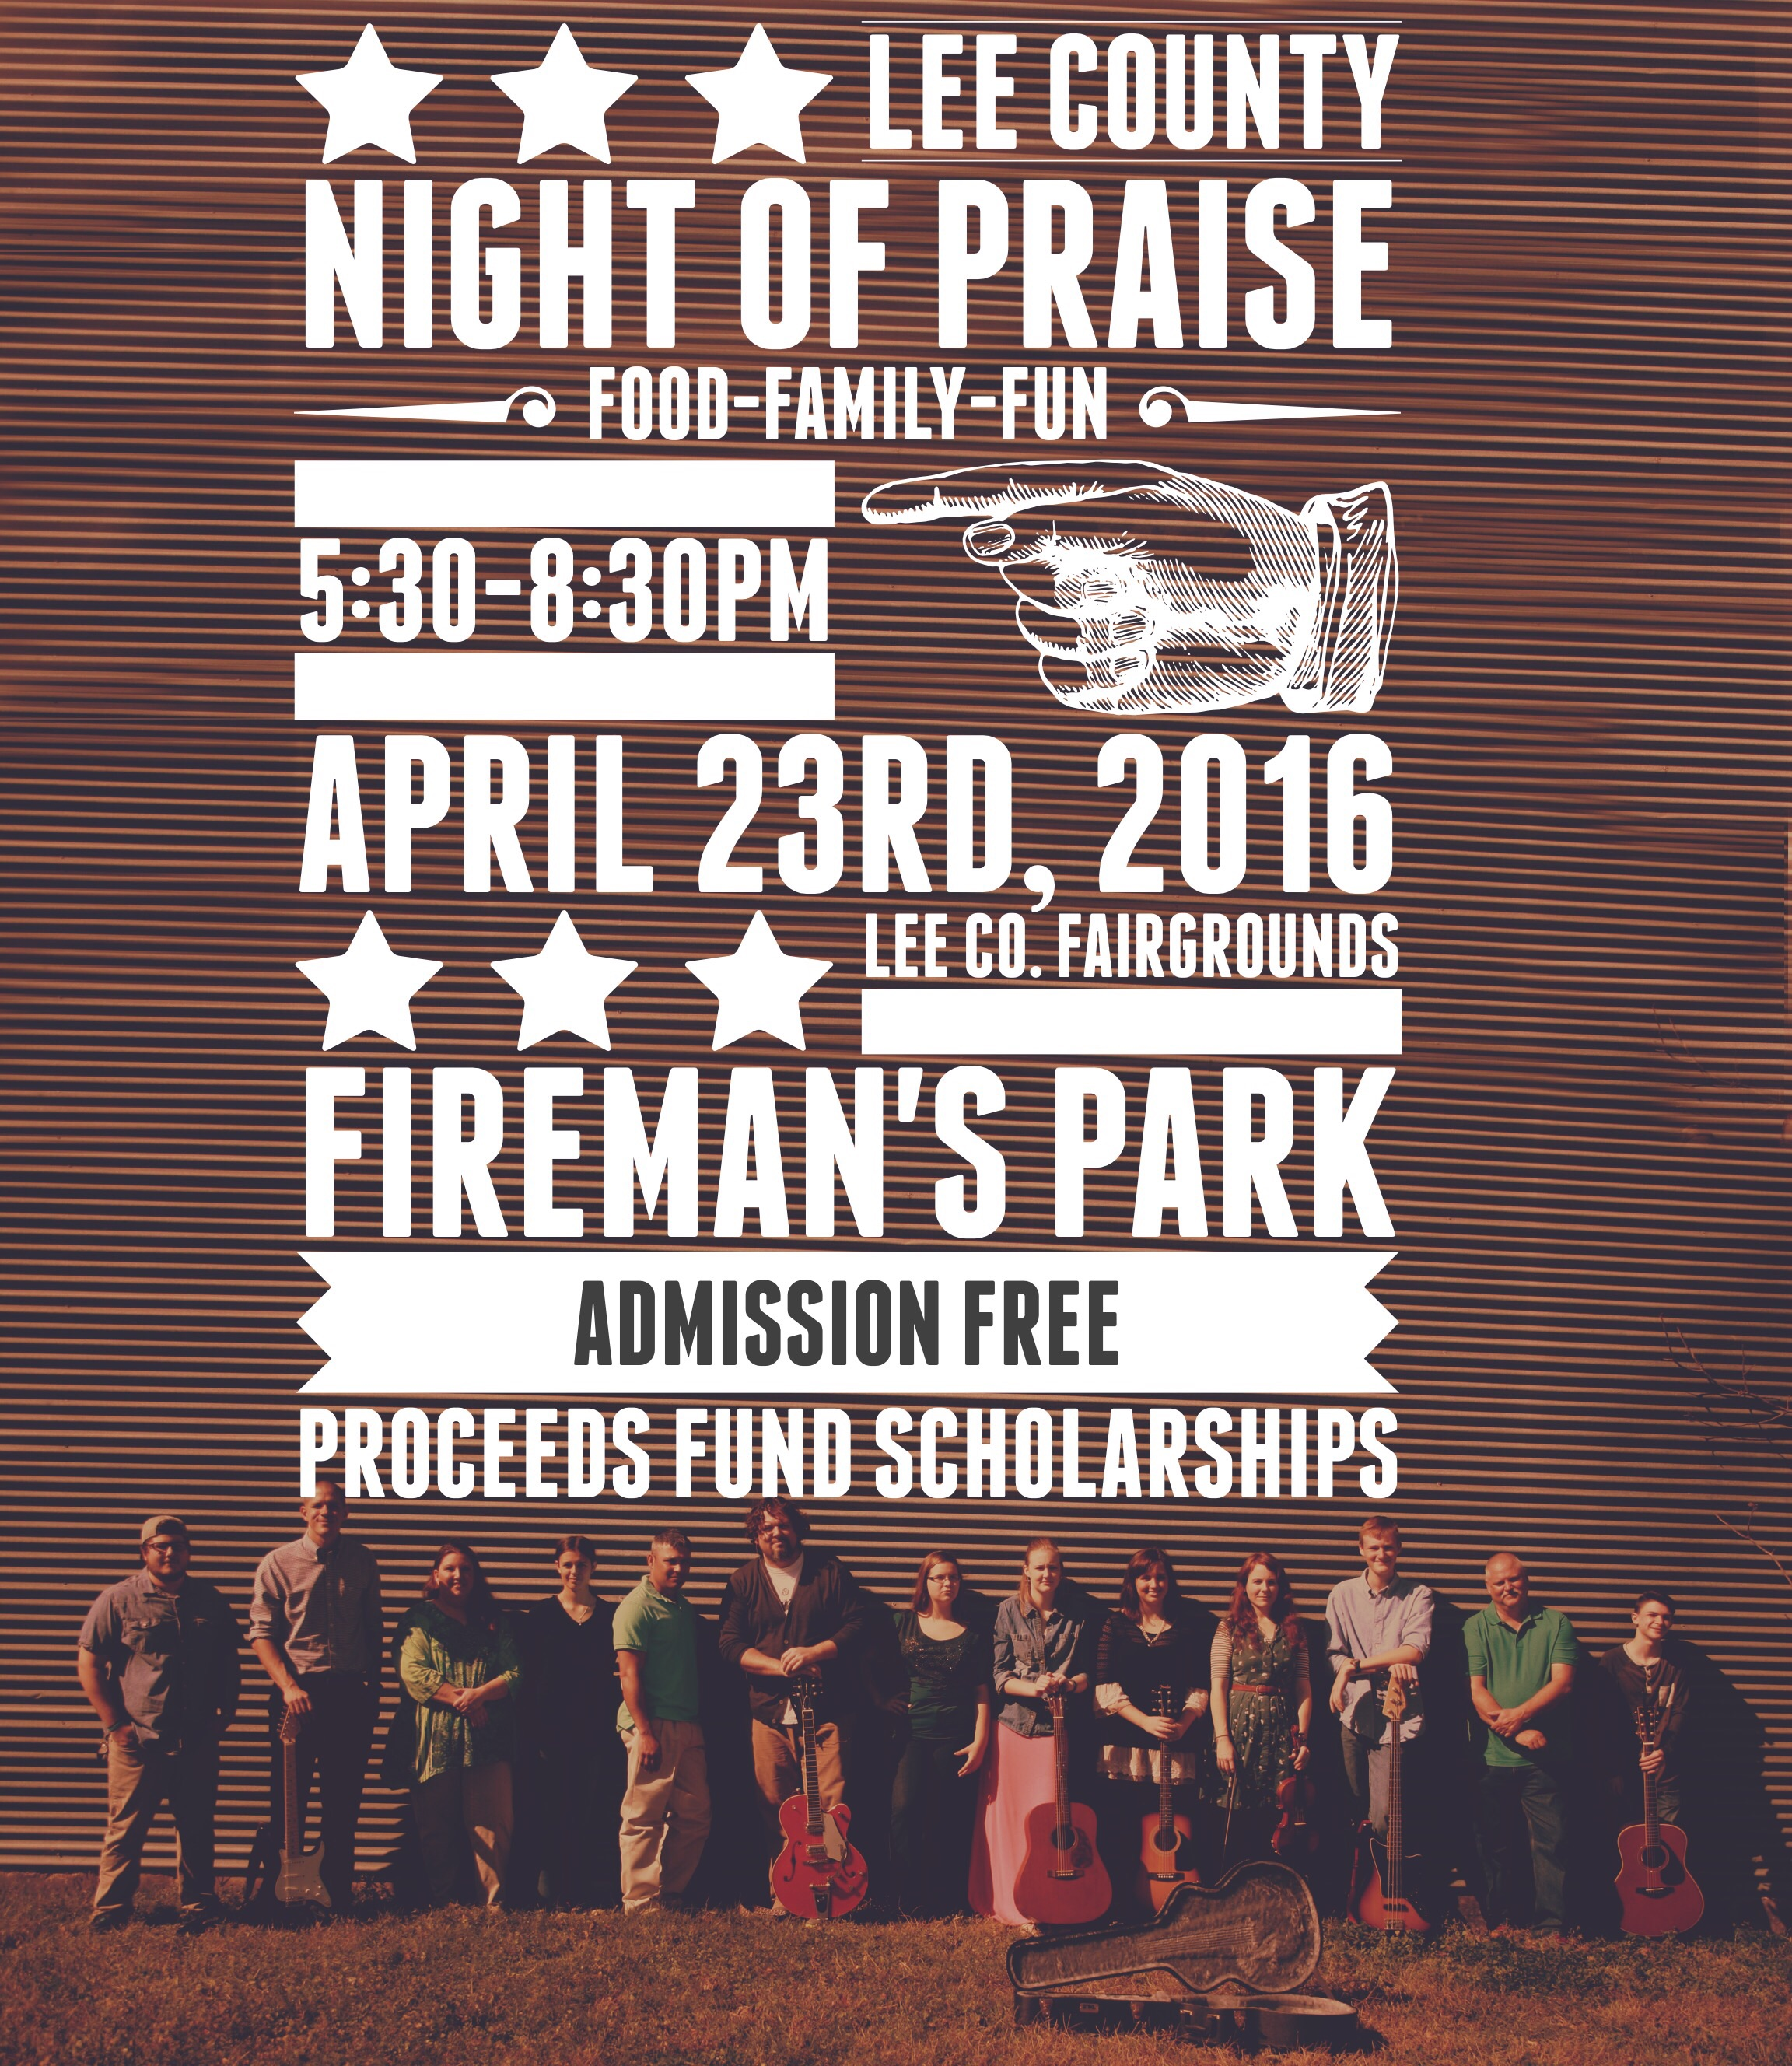 lee county night of praise